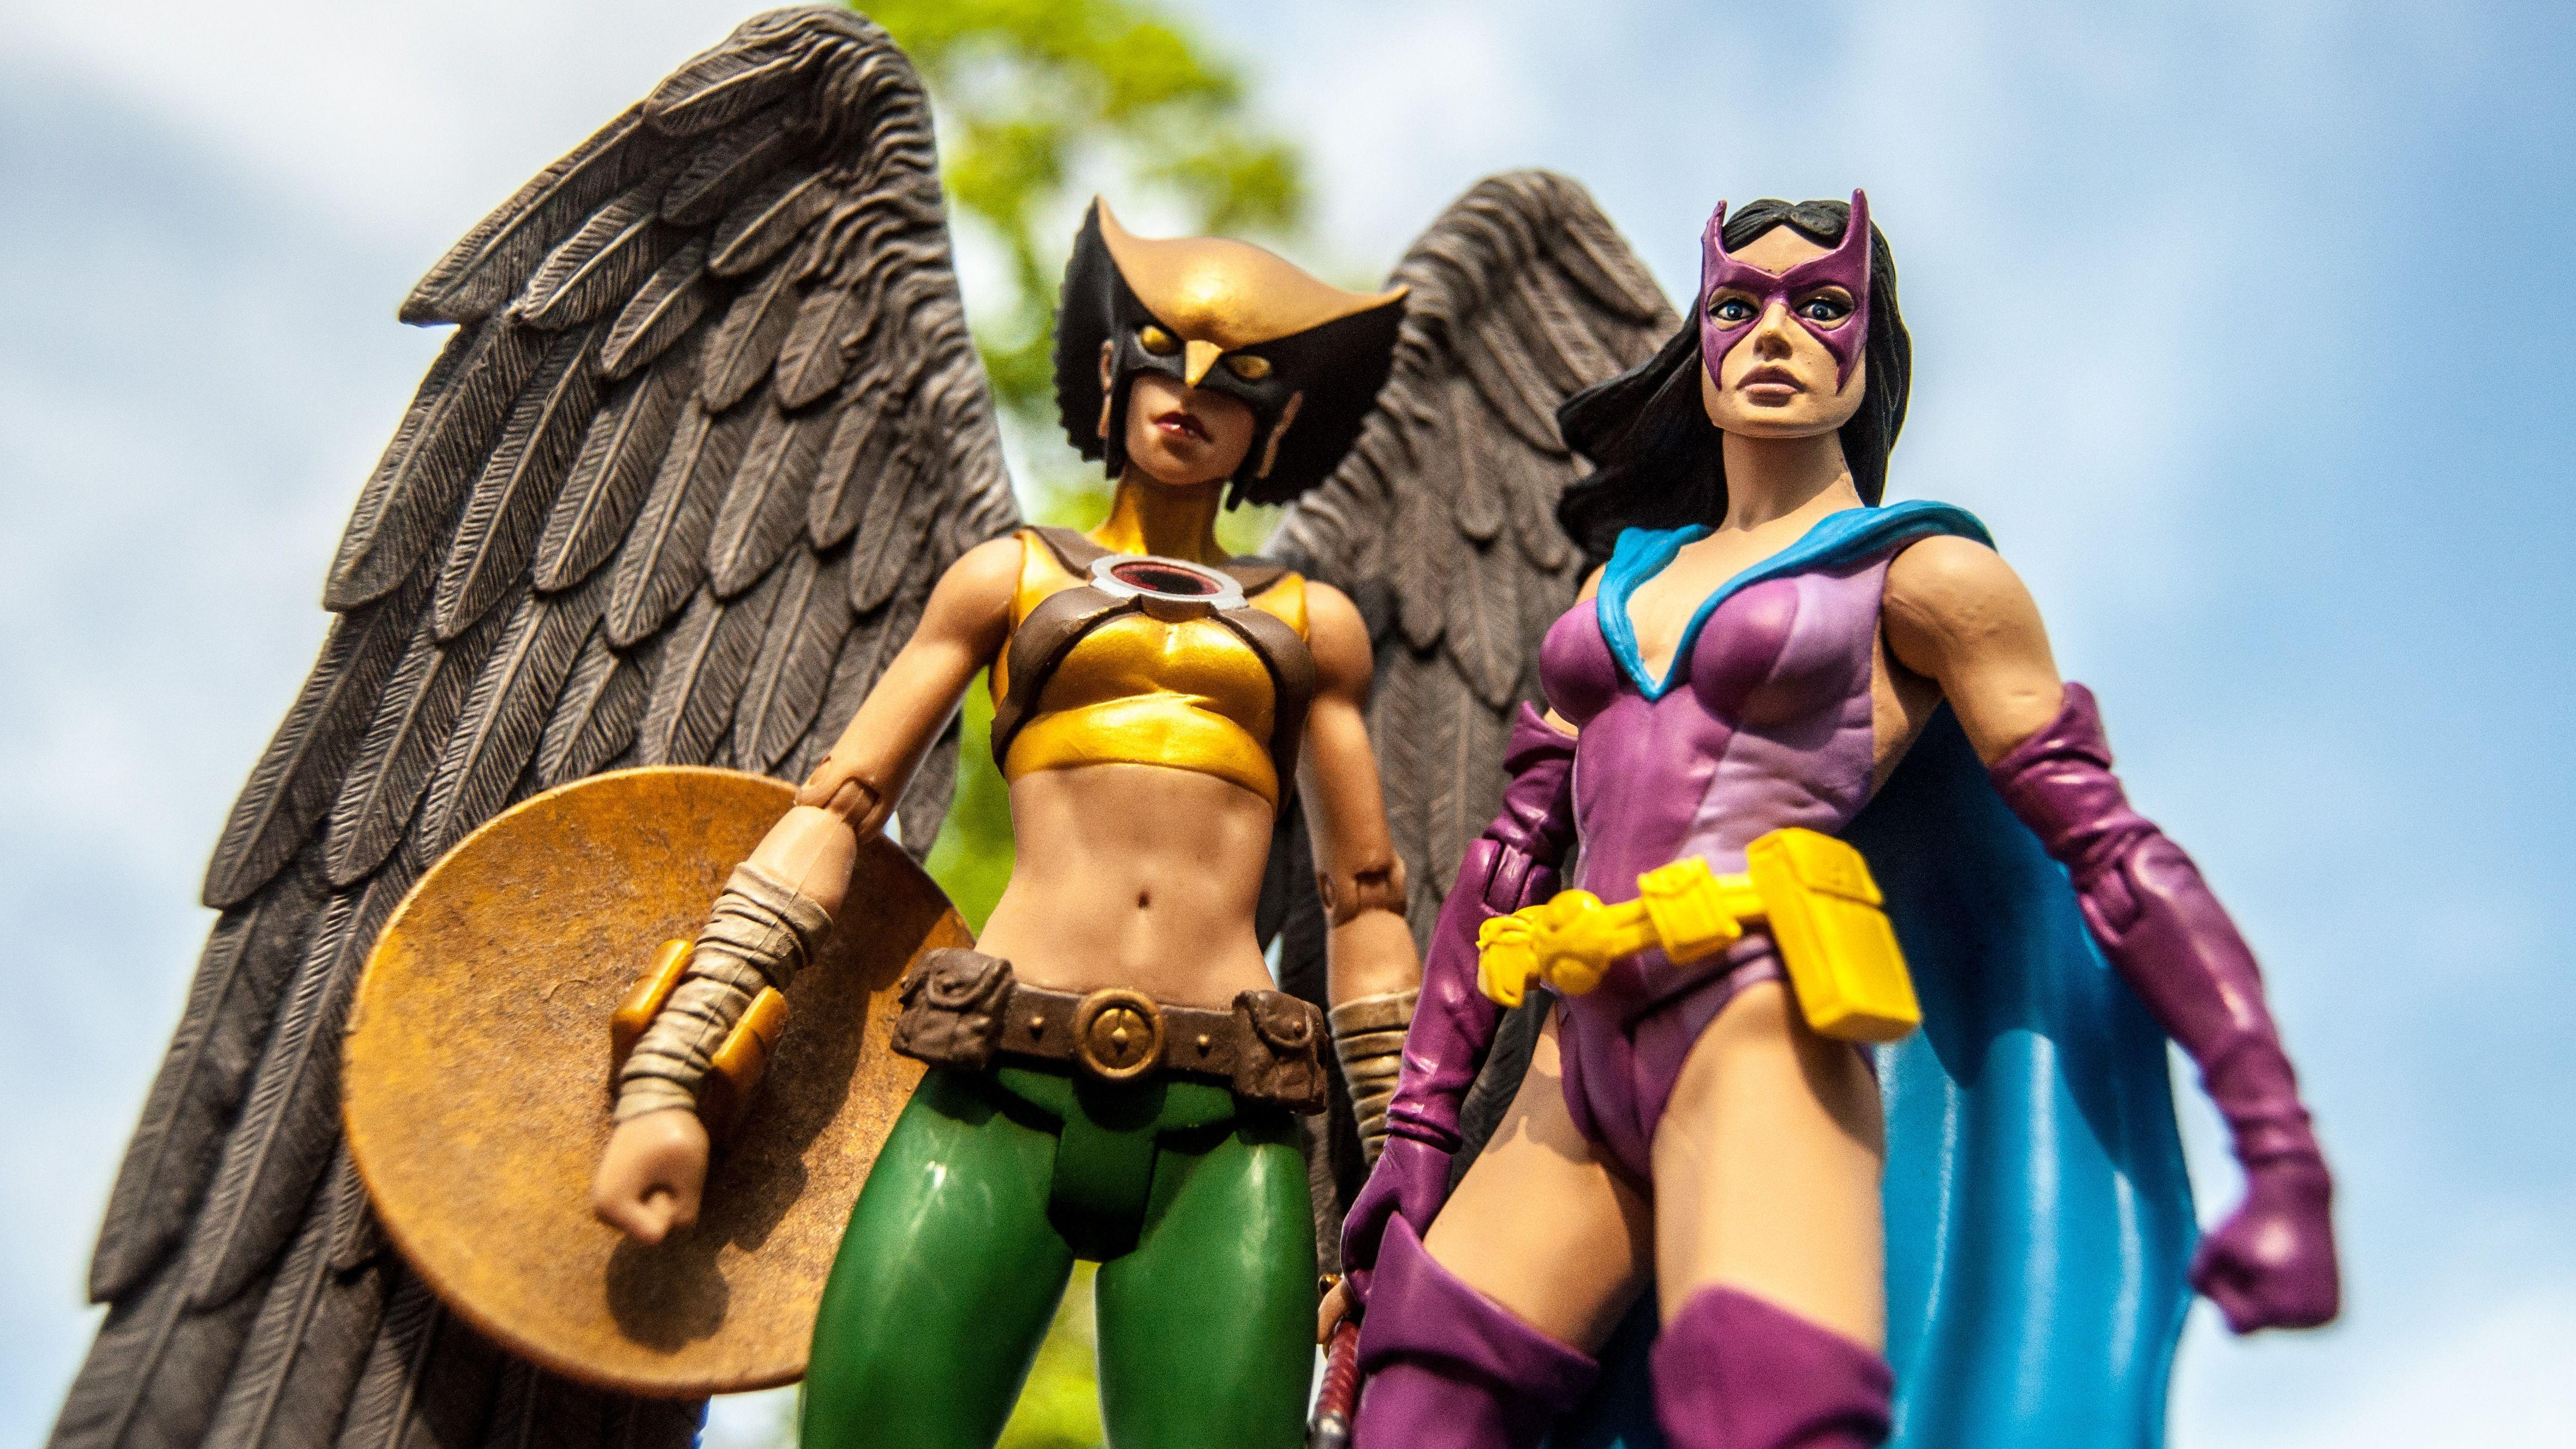 47 Hawkgirl HD Wallpapers | Backgrounds - Wallpaper Abyss